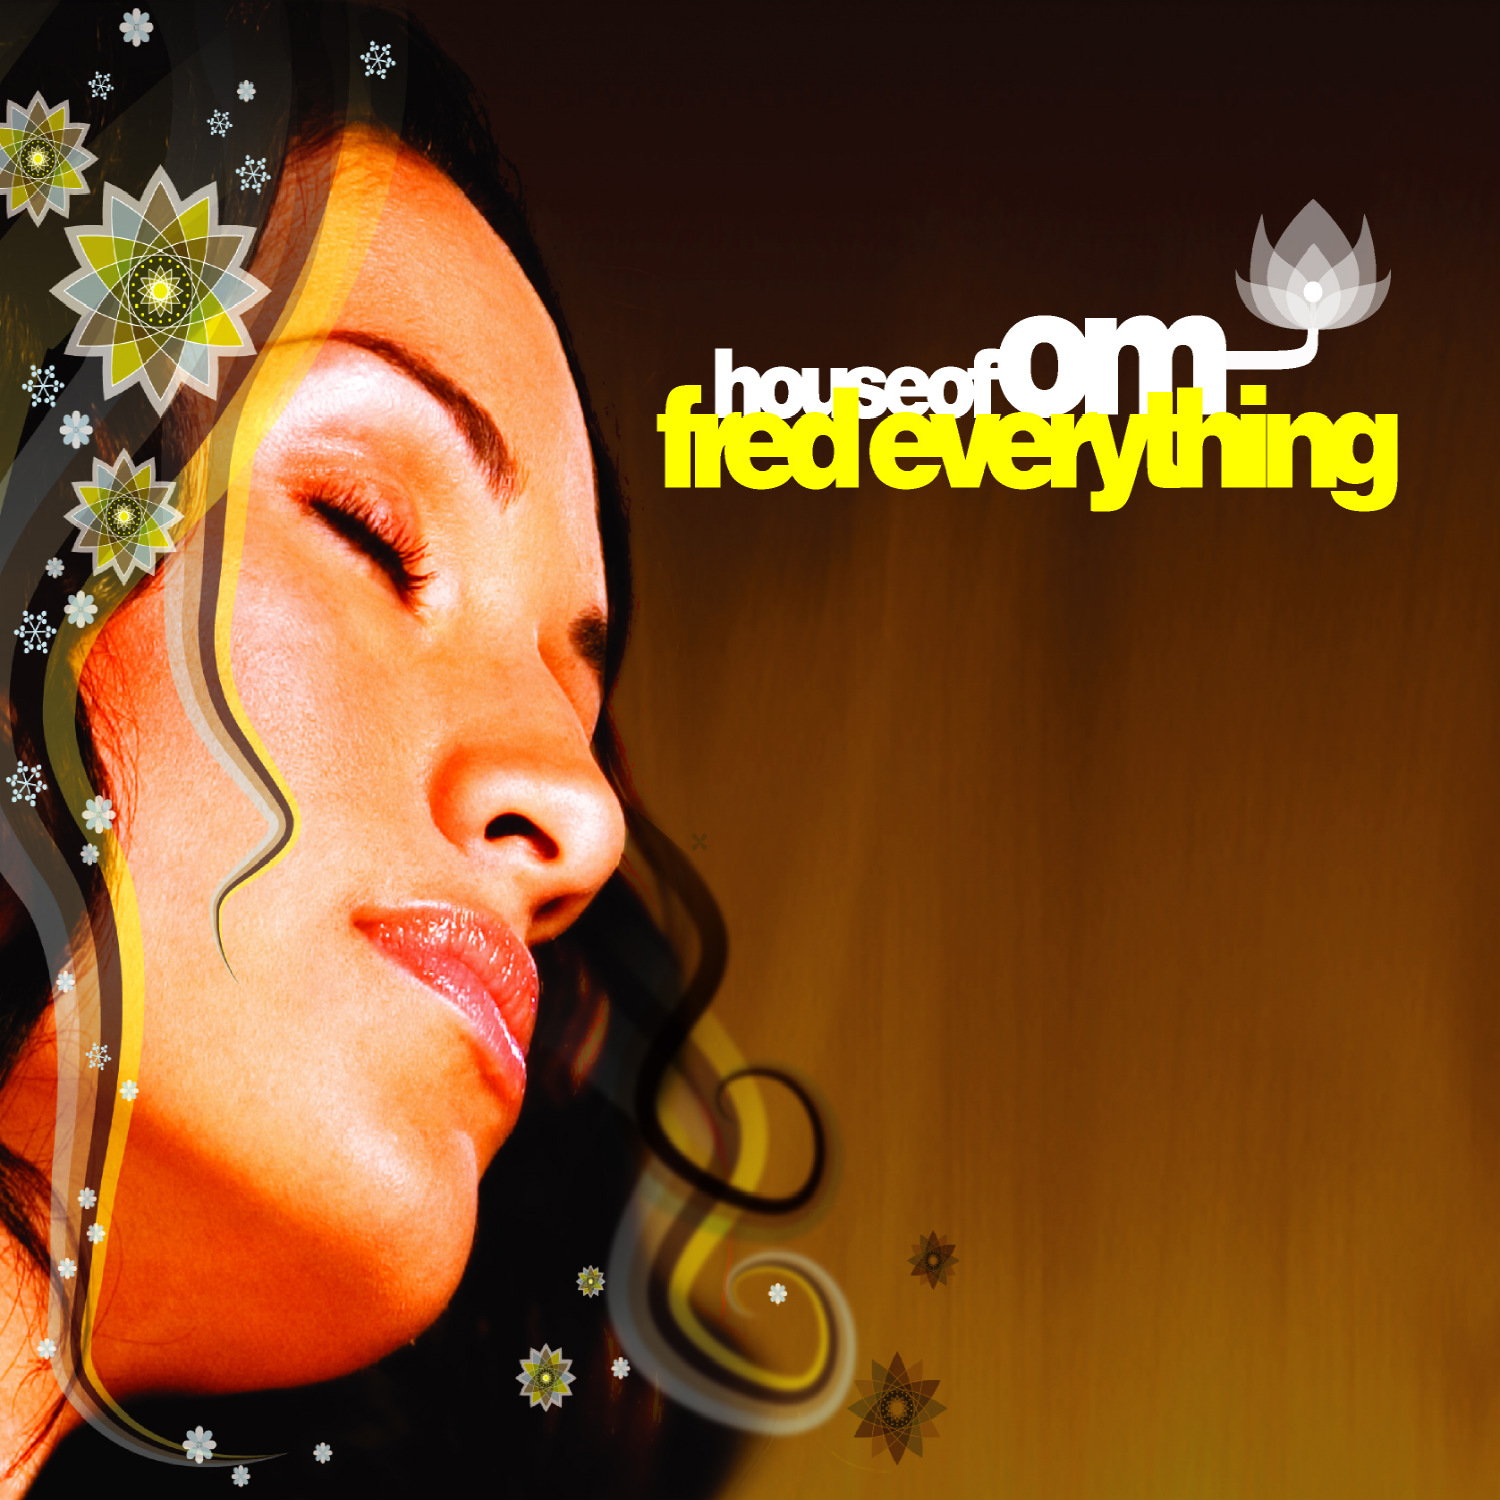 Various Artists - House of Om (Mixed by Fred Everything)